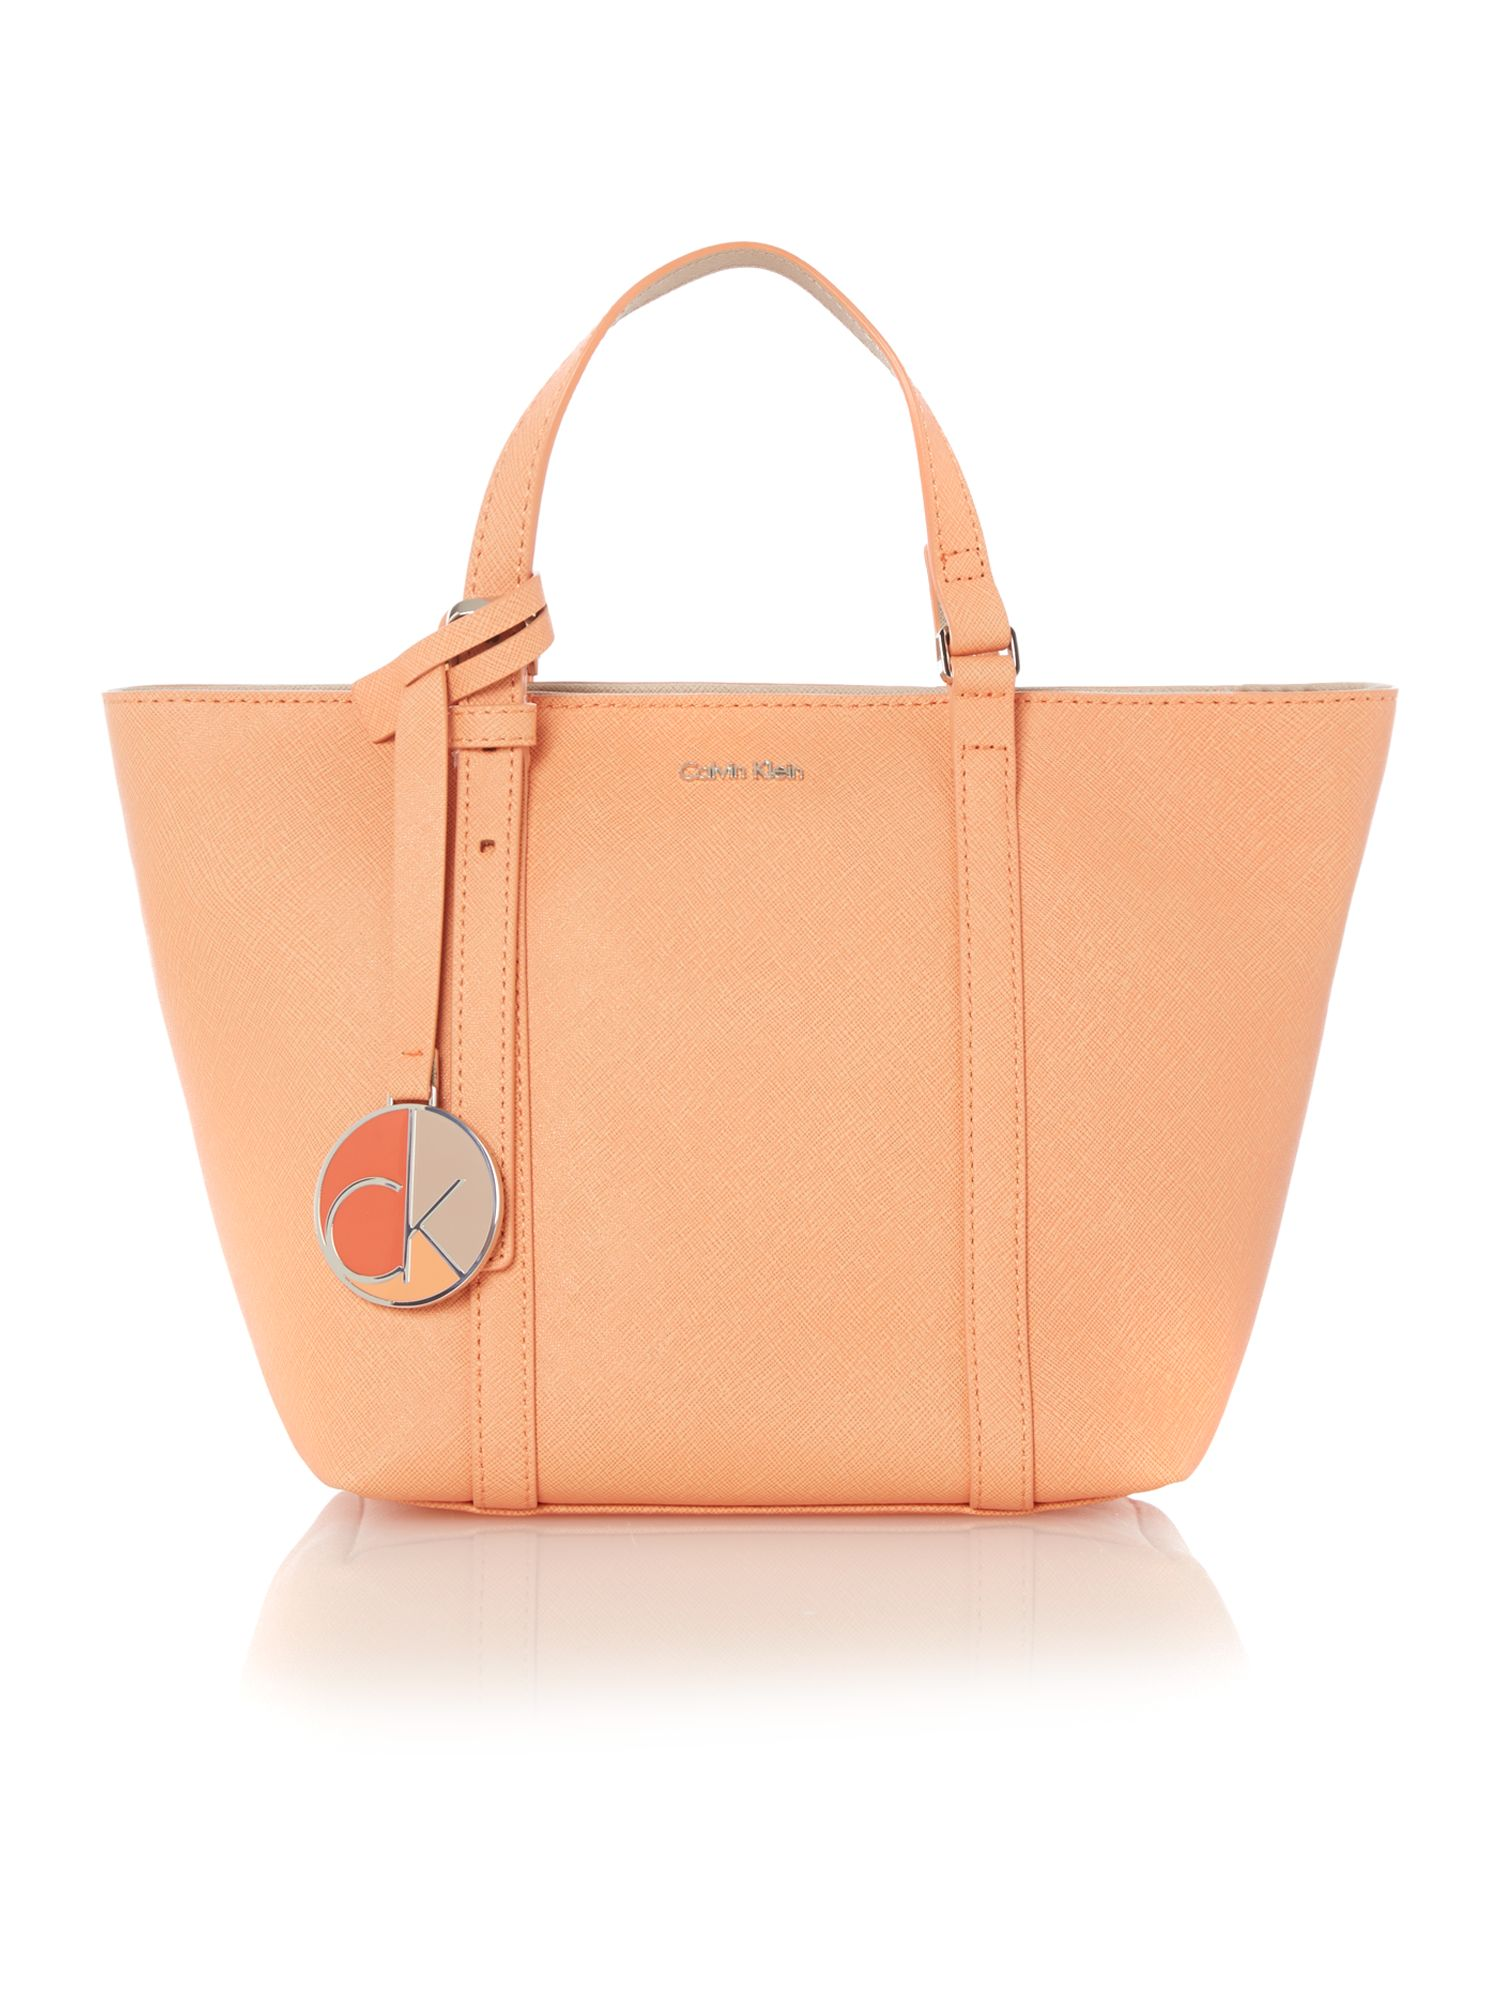 Sofie small coral tote bag